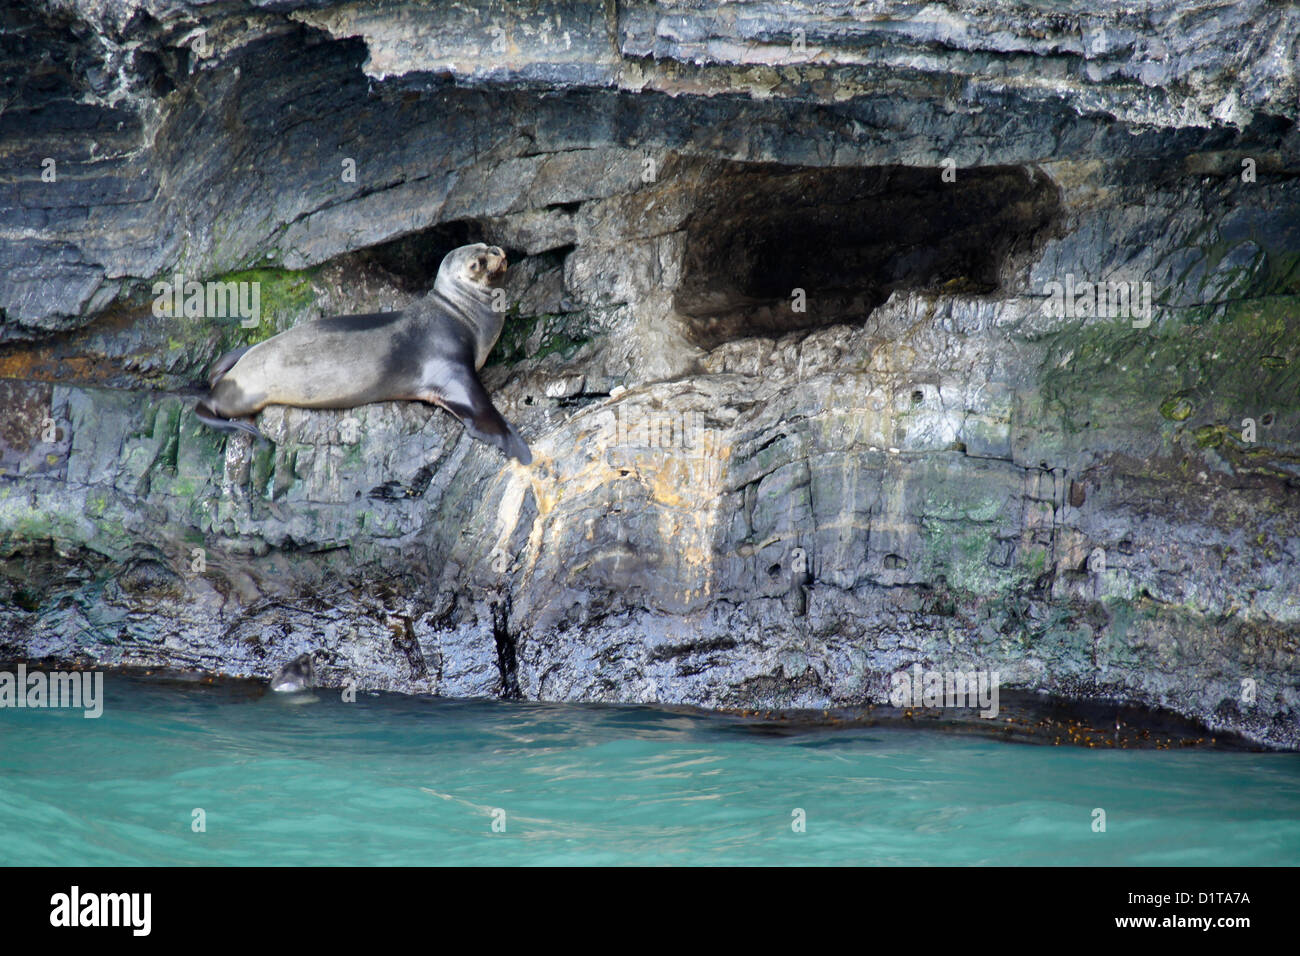 South American (Patagonian, southern) sea lion resting by cave, Seno Ultima Esperanza (Last Hope Sound), Patagonia, - Stock Image